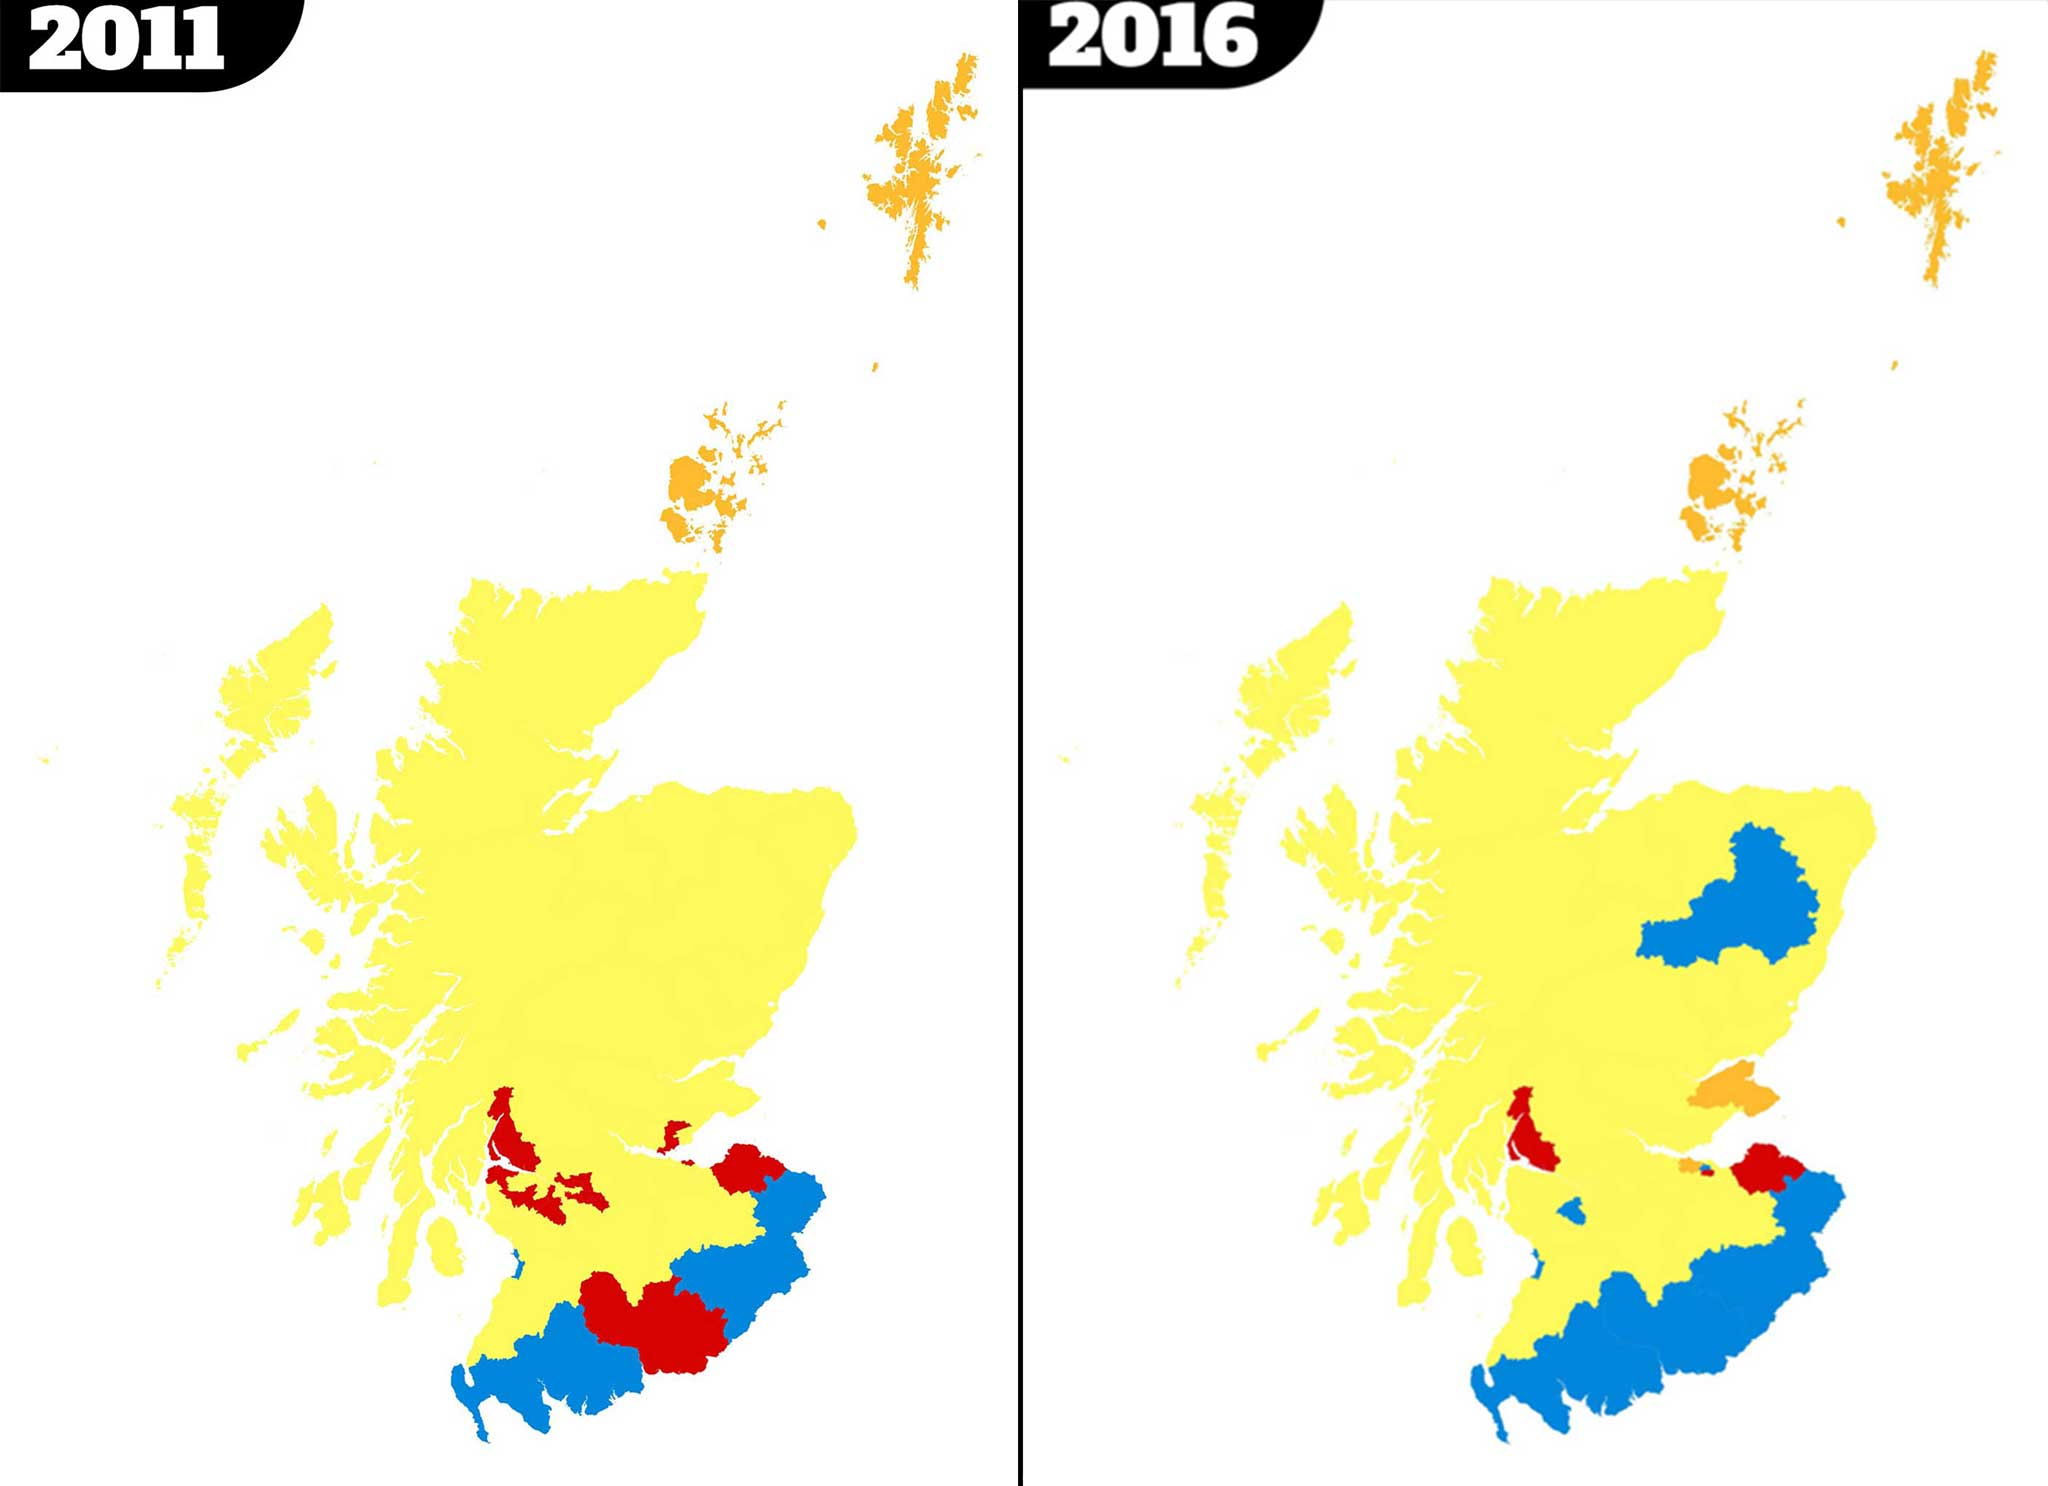 Scottish Parliament Election Results Two Maps That Show Labours - 2016 us election results map regional